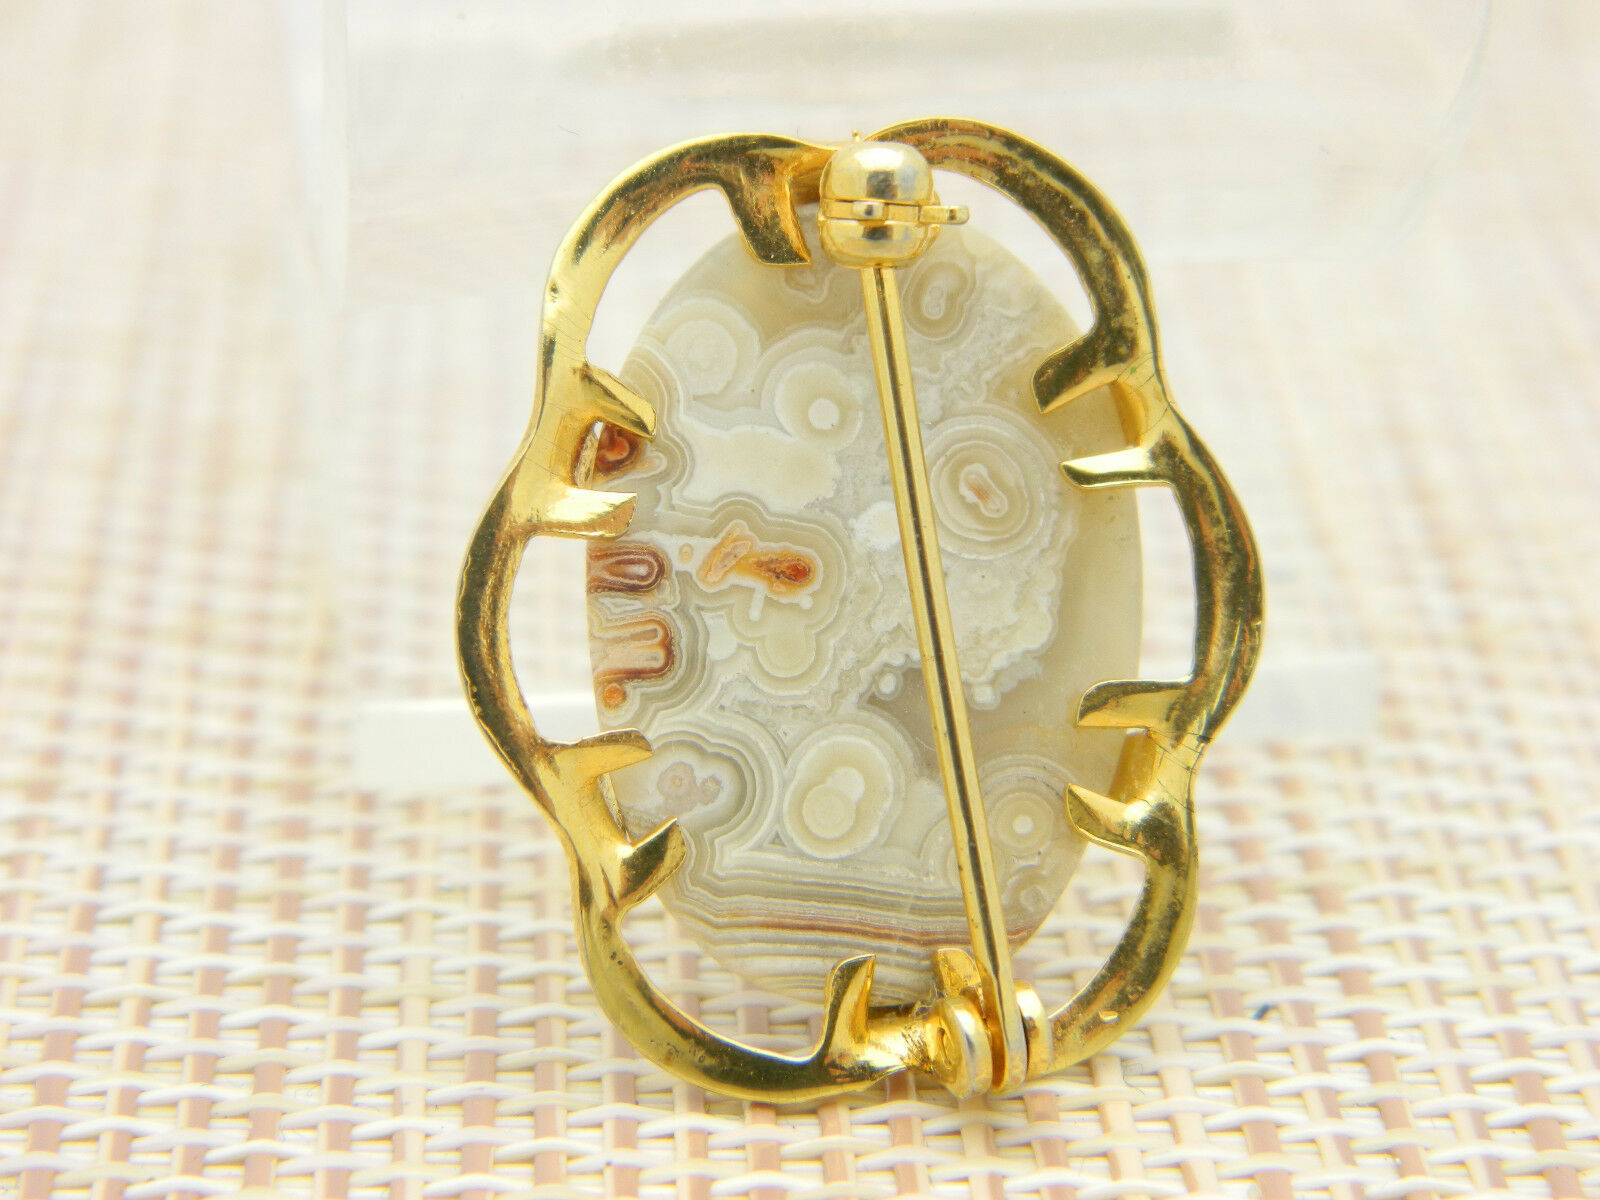 Gray Tan White Orange Agate Oval Gold Tone Pin Brooch Vintage image 4